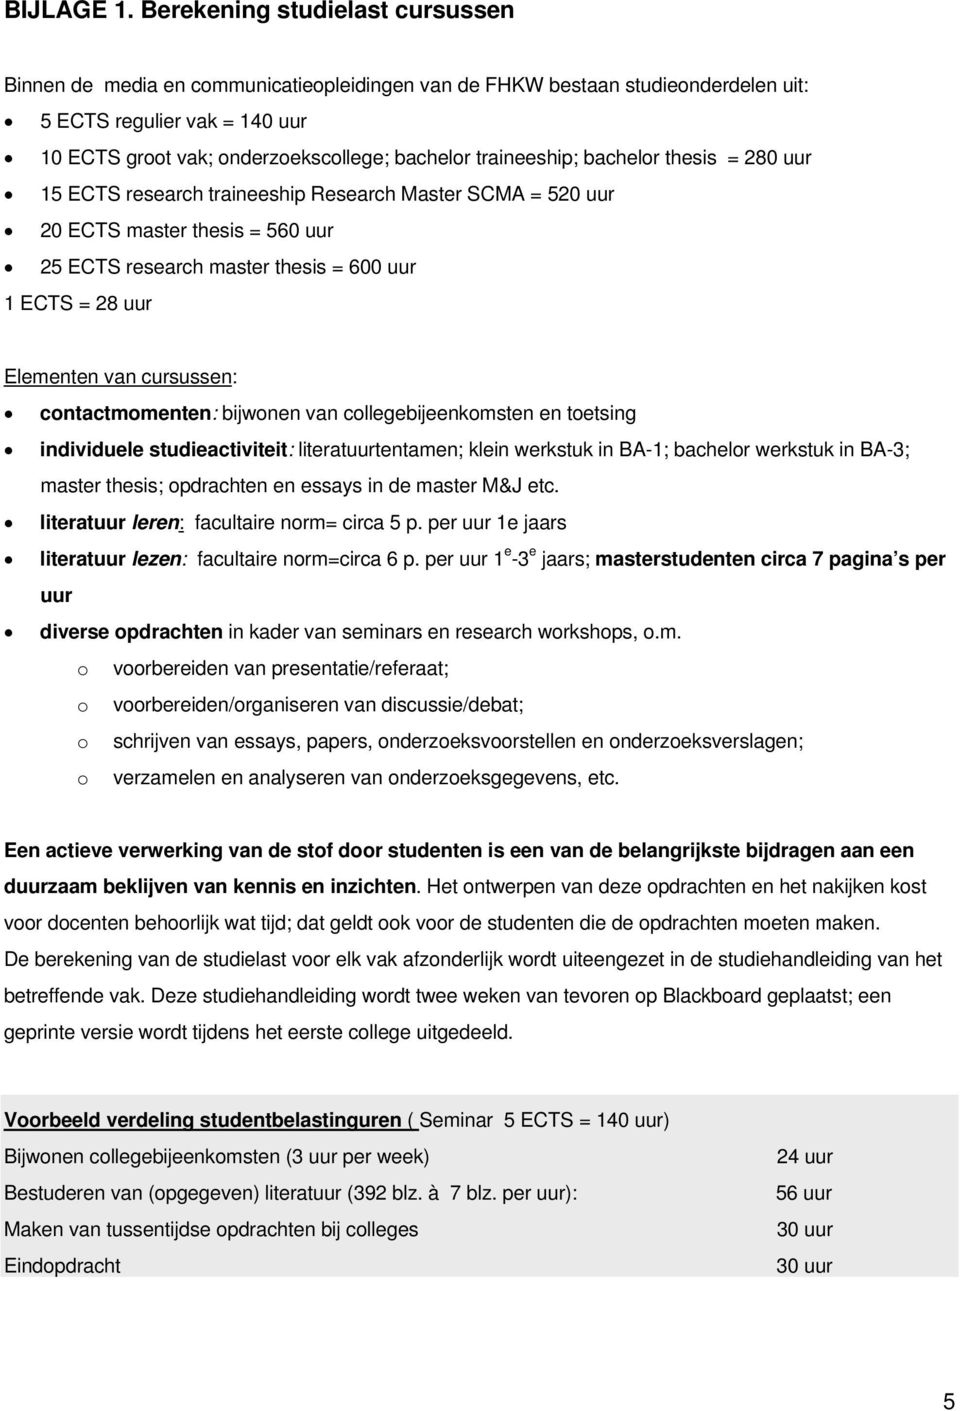 traineeship; bachelor thesis = 280 uur 15 ECTS research traineeship Research Master SCMA = 520 uur 20 ECTS master thesis = 560 uur 25 ECTS research master thesis = 600 uur 1 ECTS = 28 uur Elementen